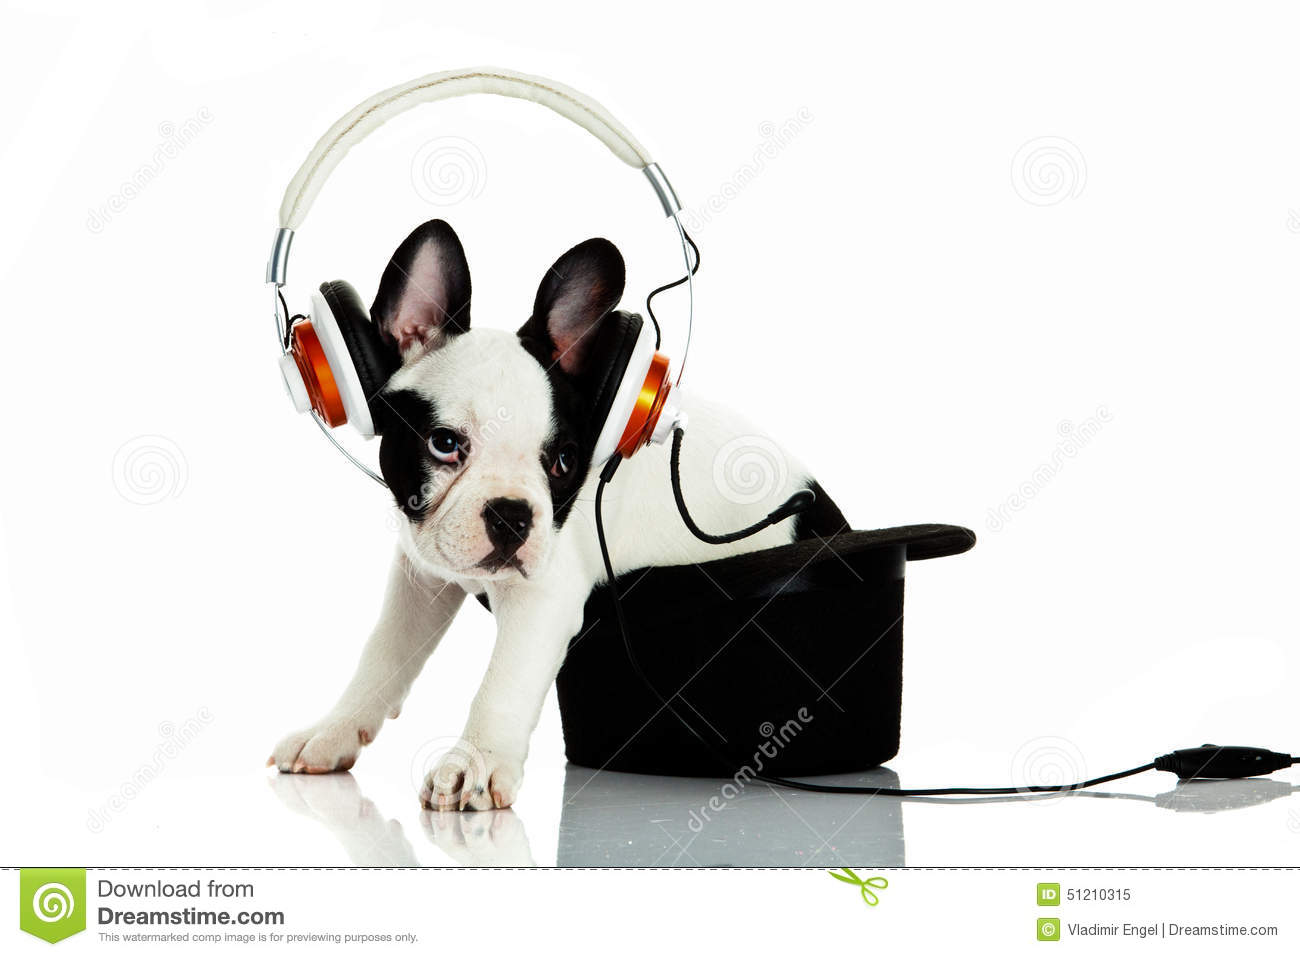 french bulldog with headphone isolated on white background french bulldog clip art pic french bulldog clipart free